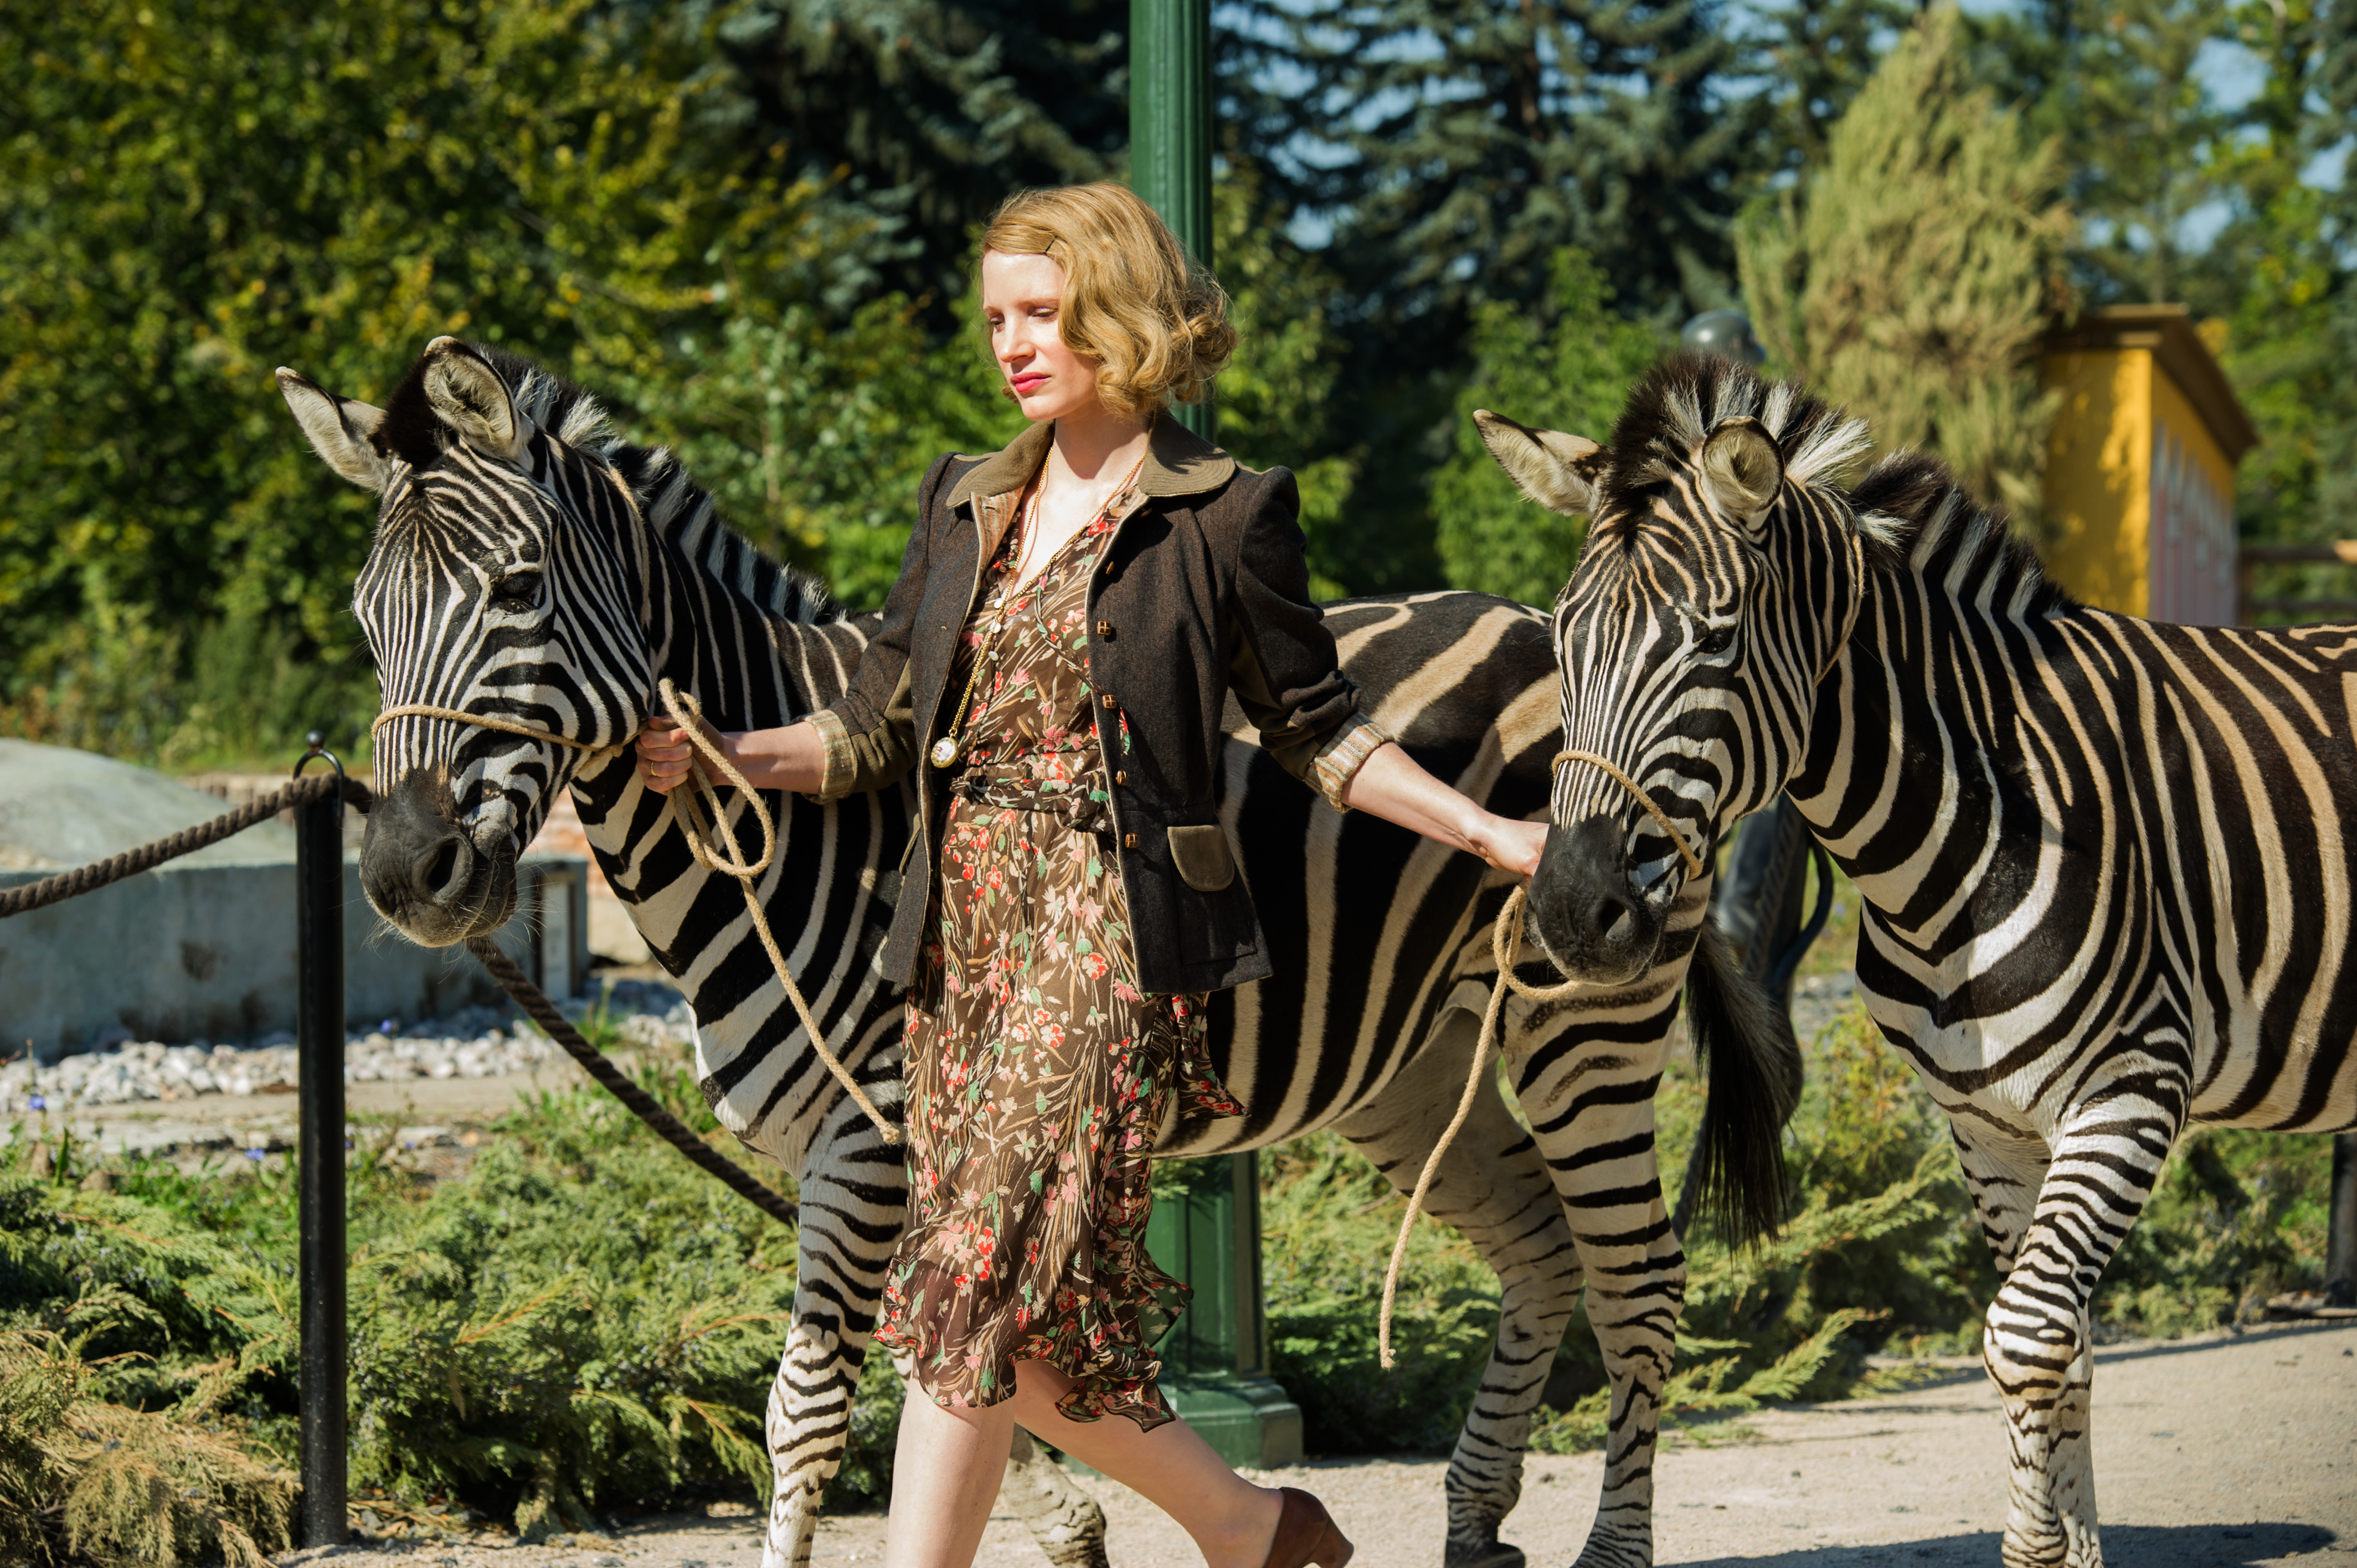 THE ZOOKEEPER'S WIFE - My Favorite Historical Movies - Communikait